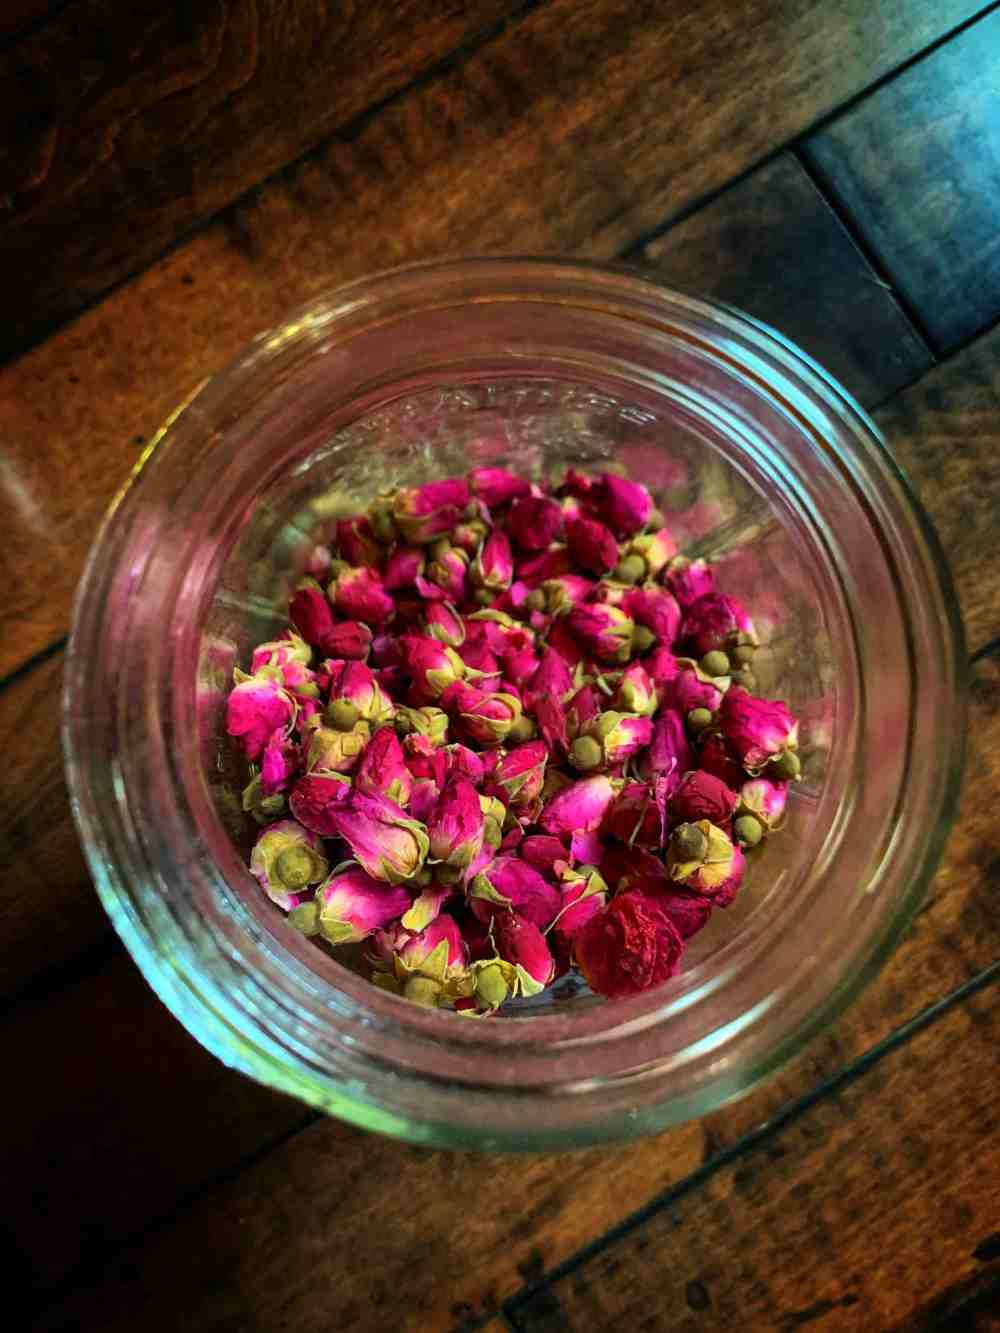 Witches herbs Rose Buds Rose Petals